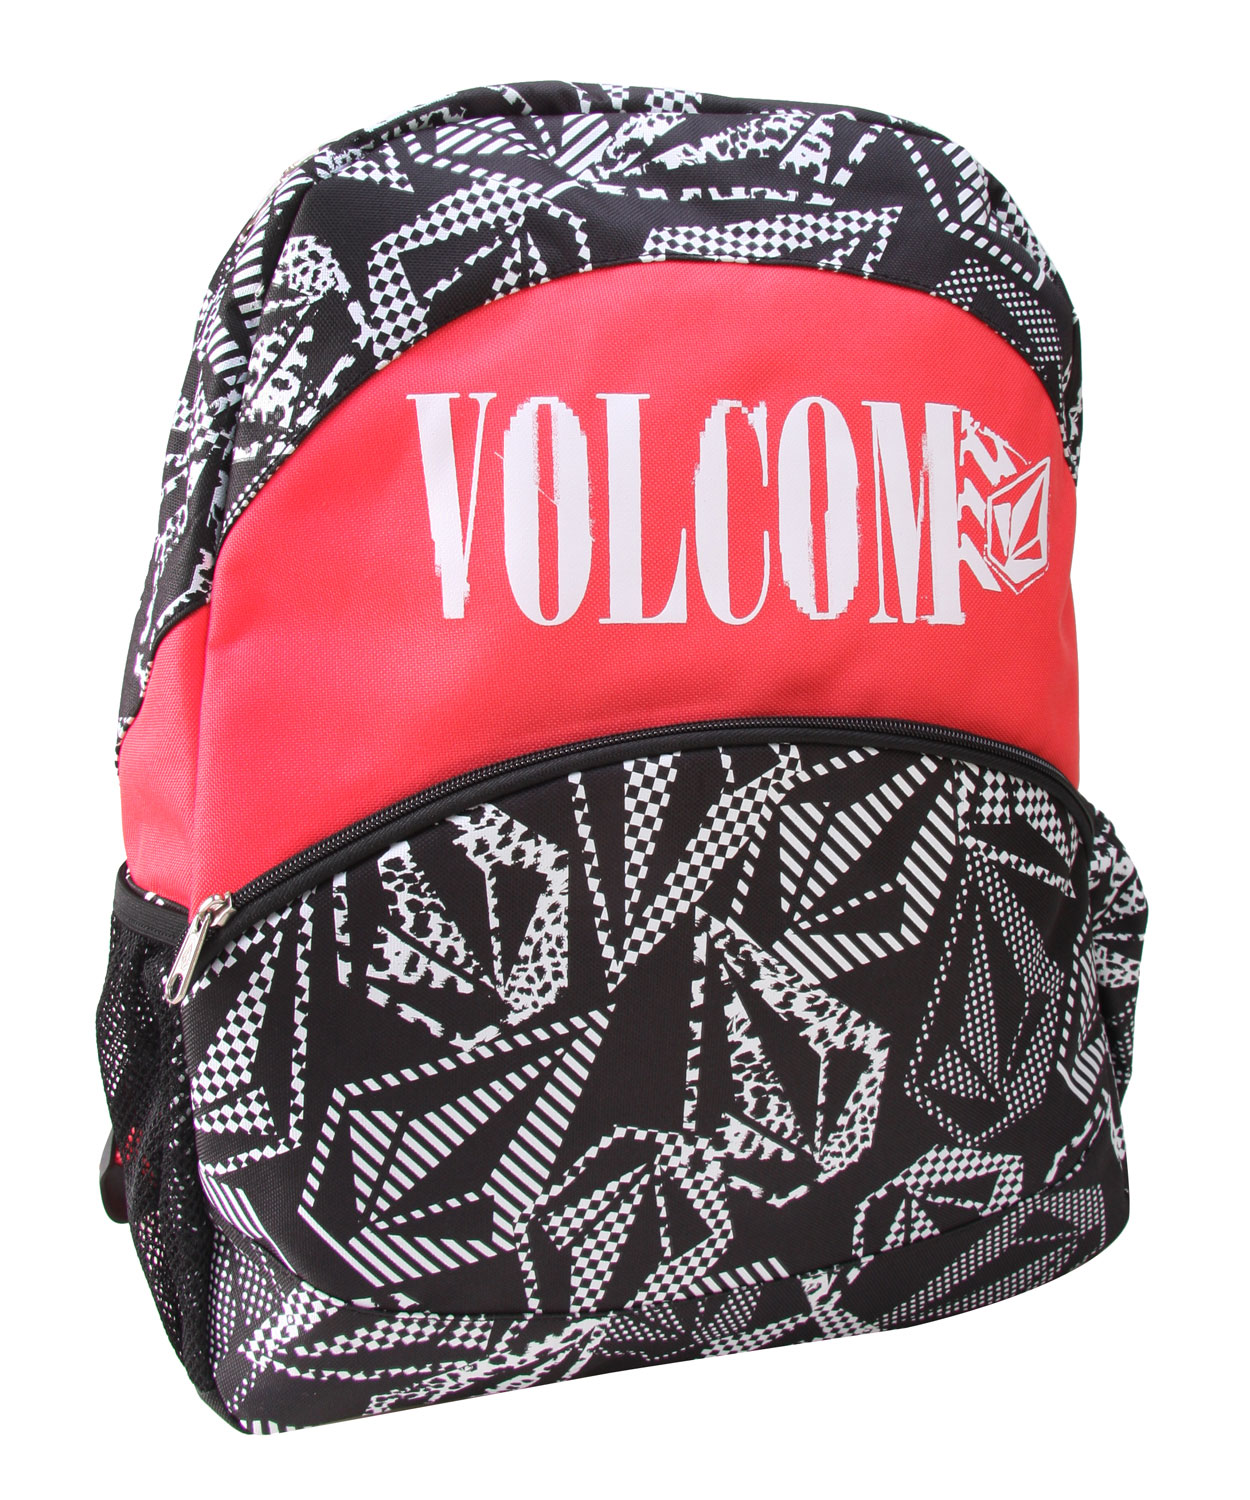 "Surf The Volcom Charm School backpack is the ultimate gear pack for snowboarders, but it will also meet the needs of other outdoor sports enthusiasts. The Volcom Screen Print front is a fashion statement on the slopes, but this backpack delivers durability and added features too. The convenient side access H2O pocket and mesh front pockets keep all your necessities easily in reach while the main pack is the perfect size to hold your gear without being bulky and overwhelming to carry.Key Features of The Volcom Charm School Women's Backpack: Printed Poly Backpack with Volcom Screen Print at Front and Mesh H20 Pocket at Side Volcom Embroidery at Handle and Large Stone Embroidery at Back Exterior Front Pocket and Interior Mesh Zipper Pocket 14""W x 17""H x 4.5""D Volume: 19 Liters - $22.95"